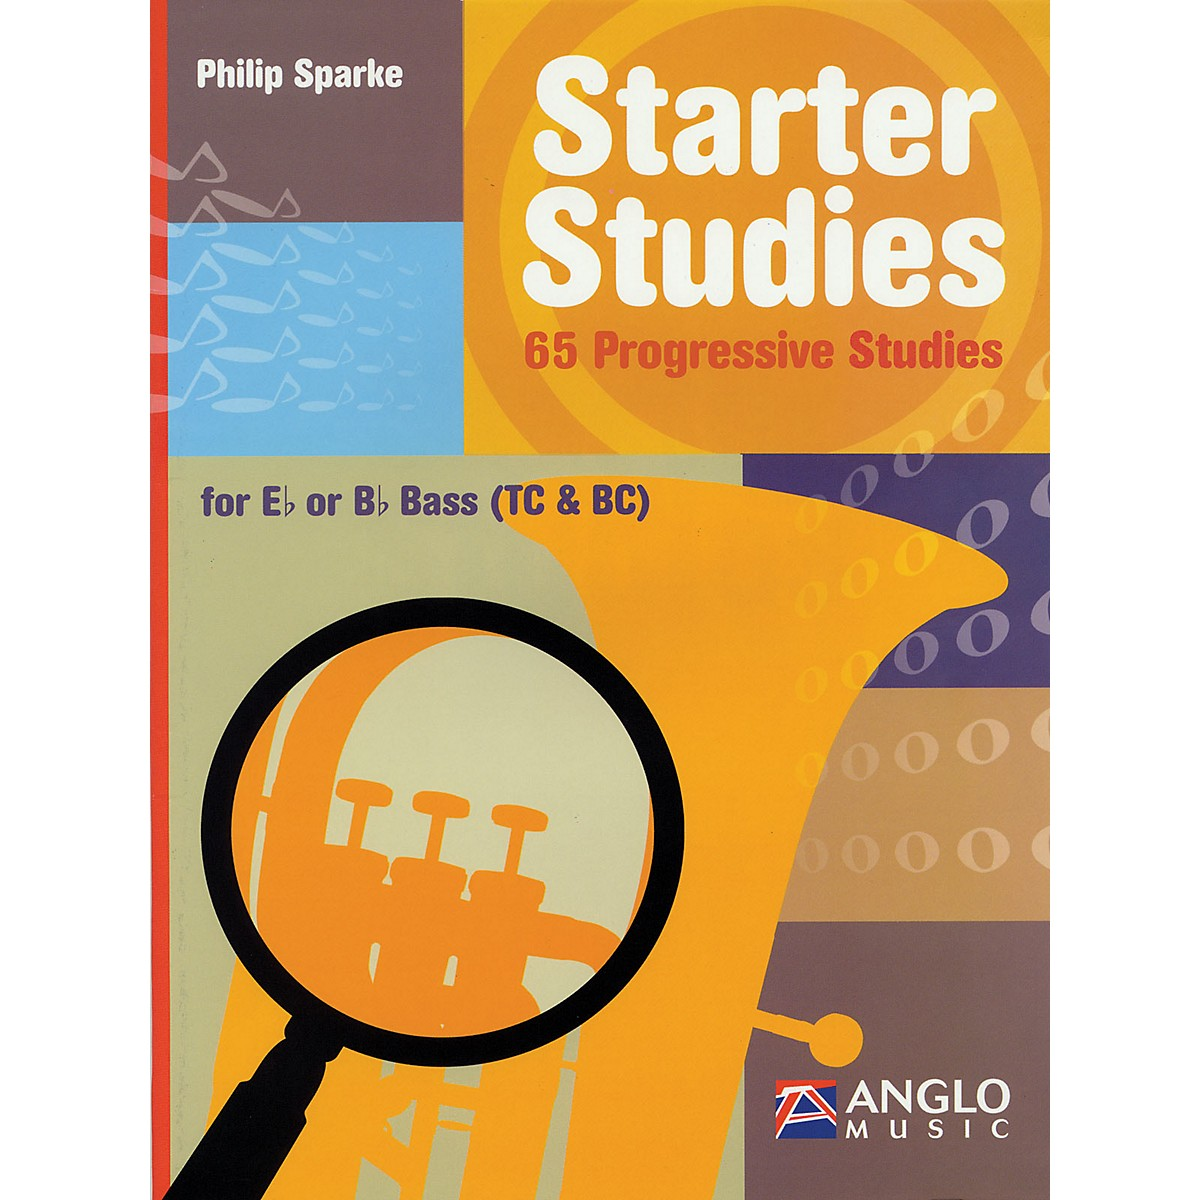 Anglo Music Starter Studies (Eb or Bb Bass) De Haske Play-Along Book Series Written by Philip Sparke